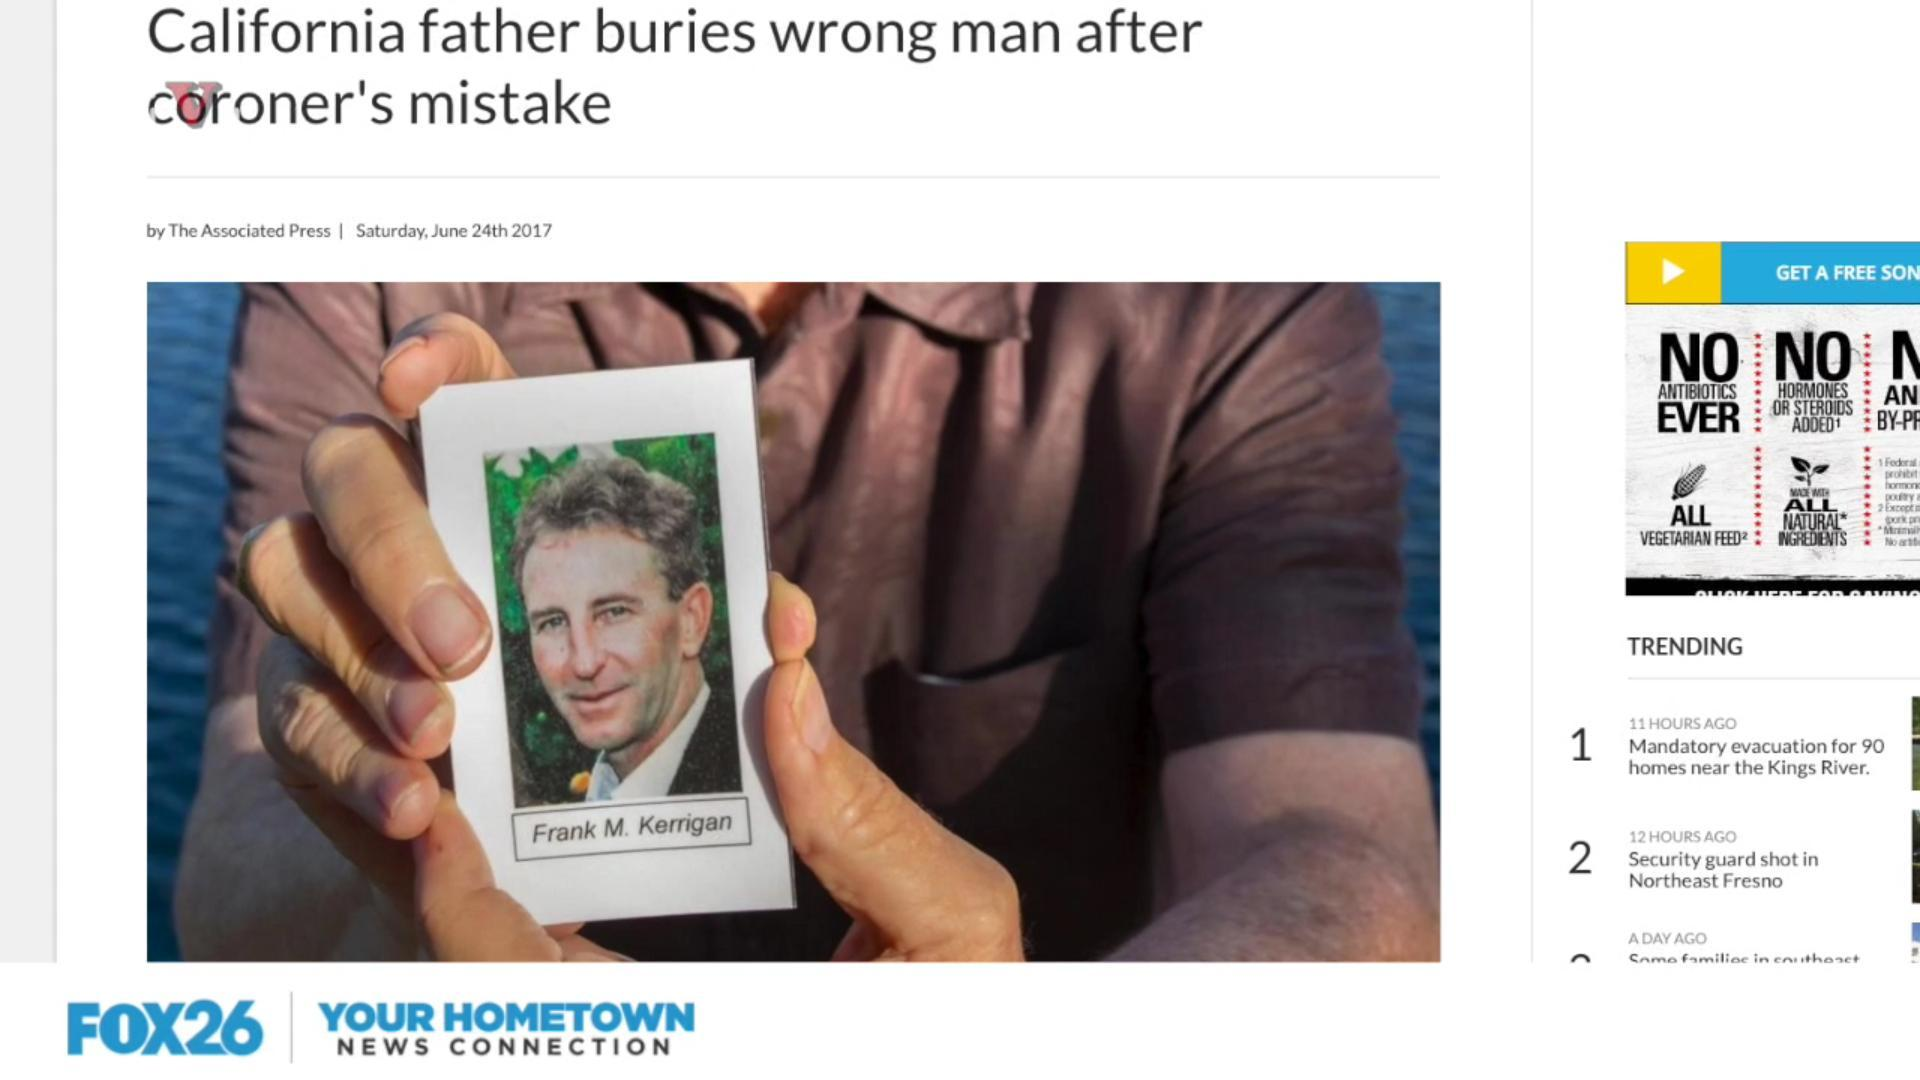 Family Buries Wrong Person Due To Coroner's Mistake